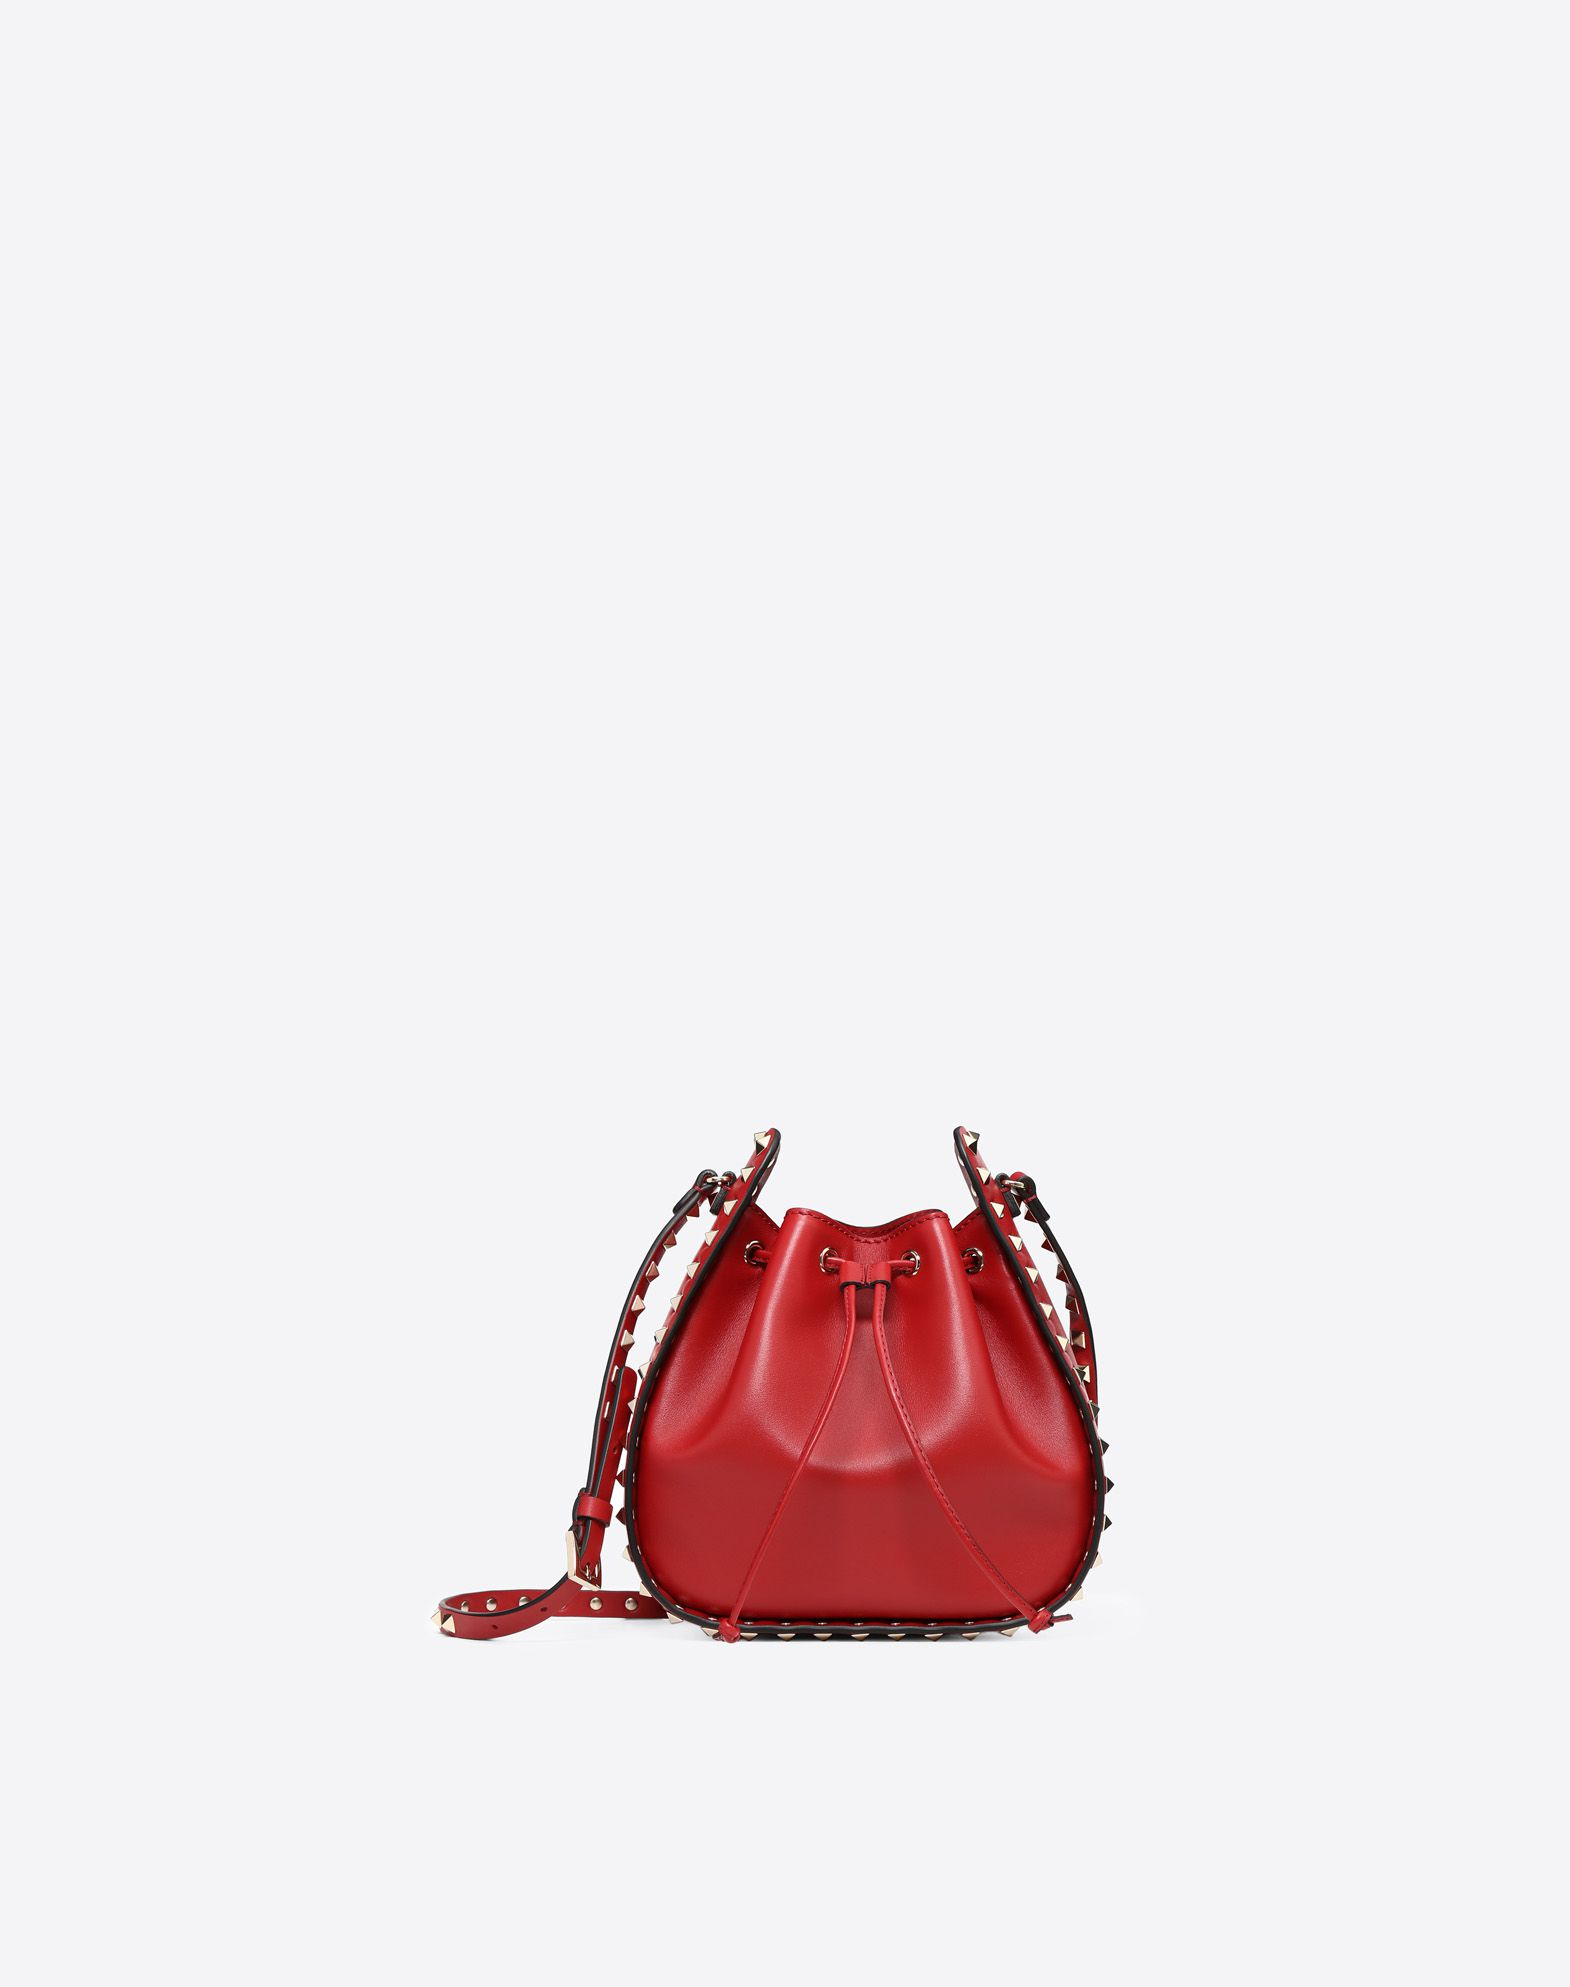 VALENTINO Logo Metal Applications Solid color  45329553or